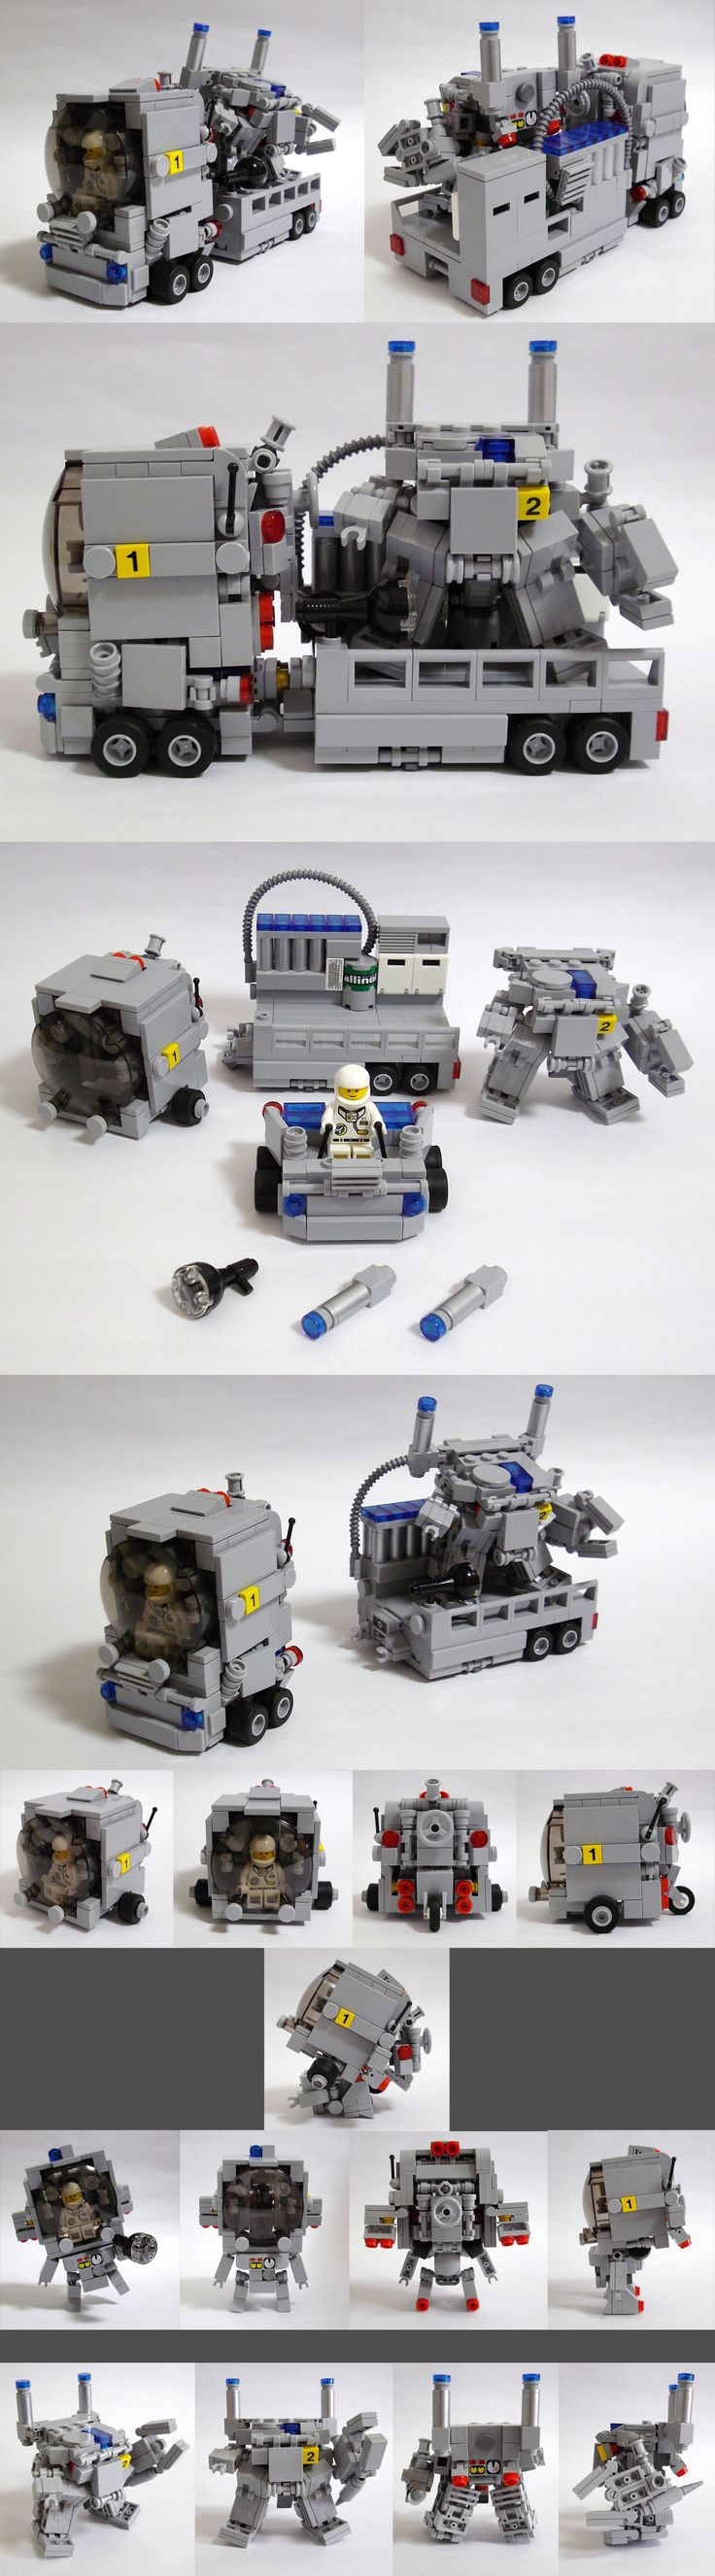 LEGO trailer truck transport with mech robot. Different sections that transform into multiple units.